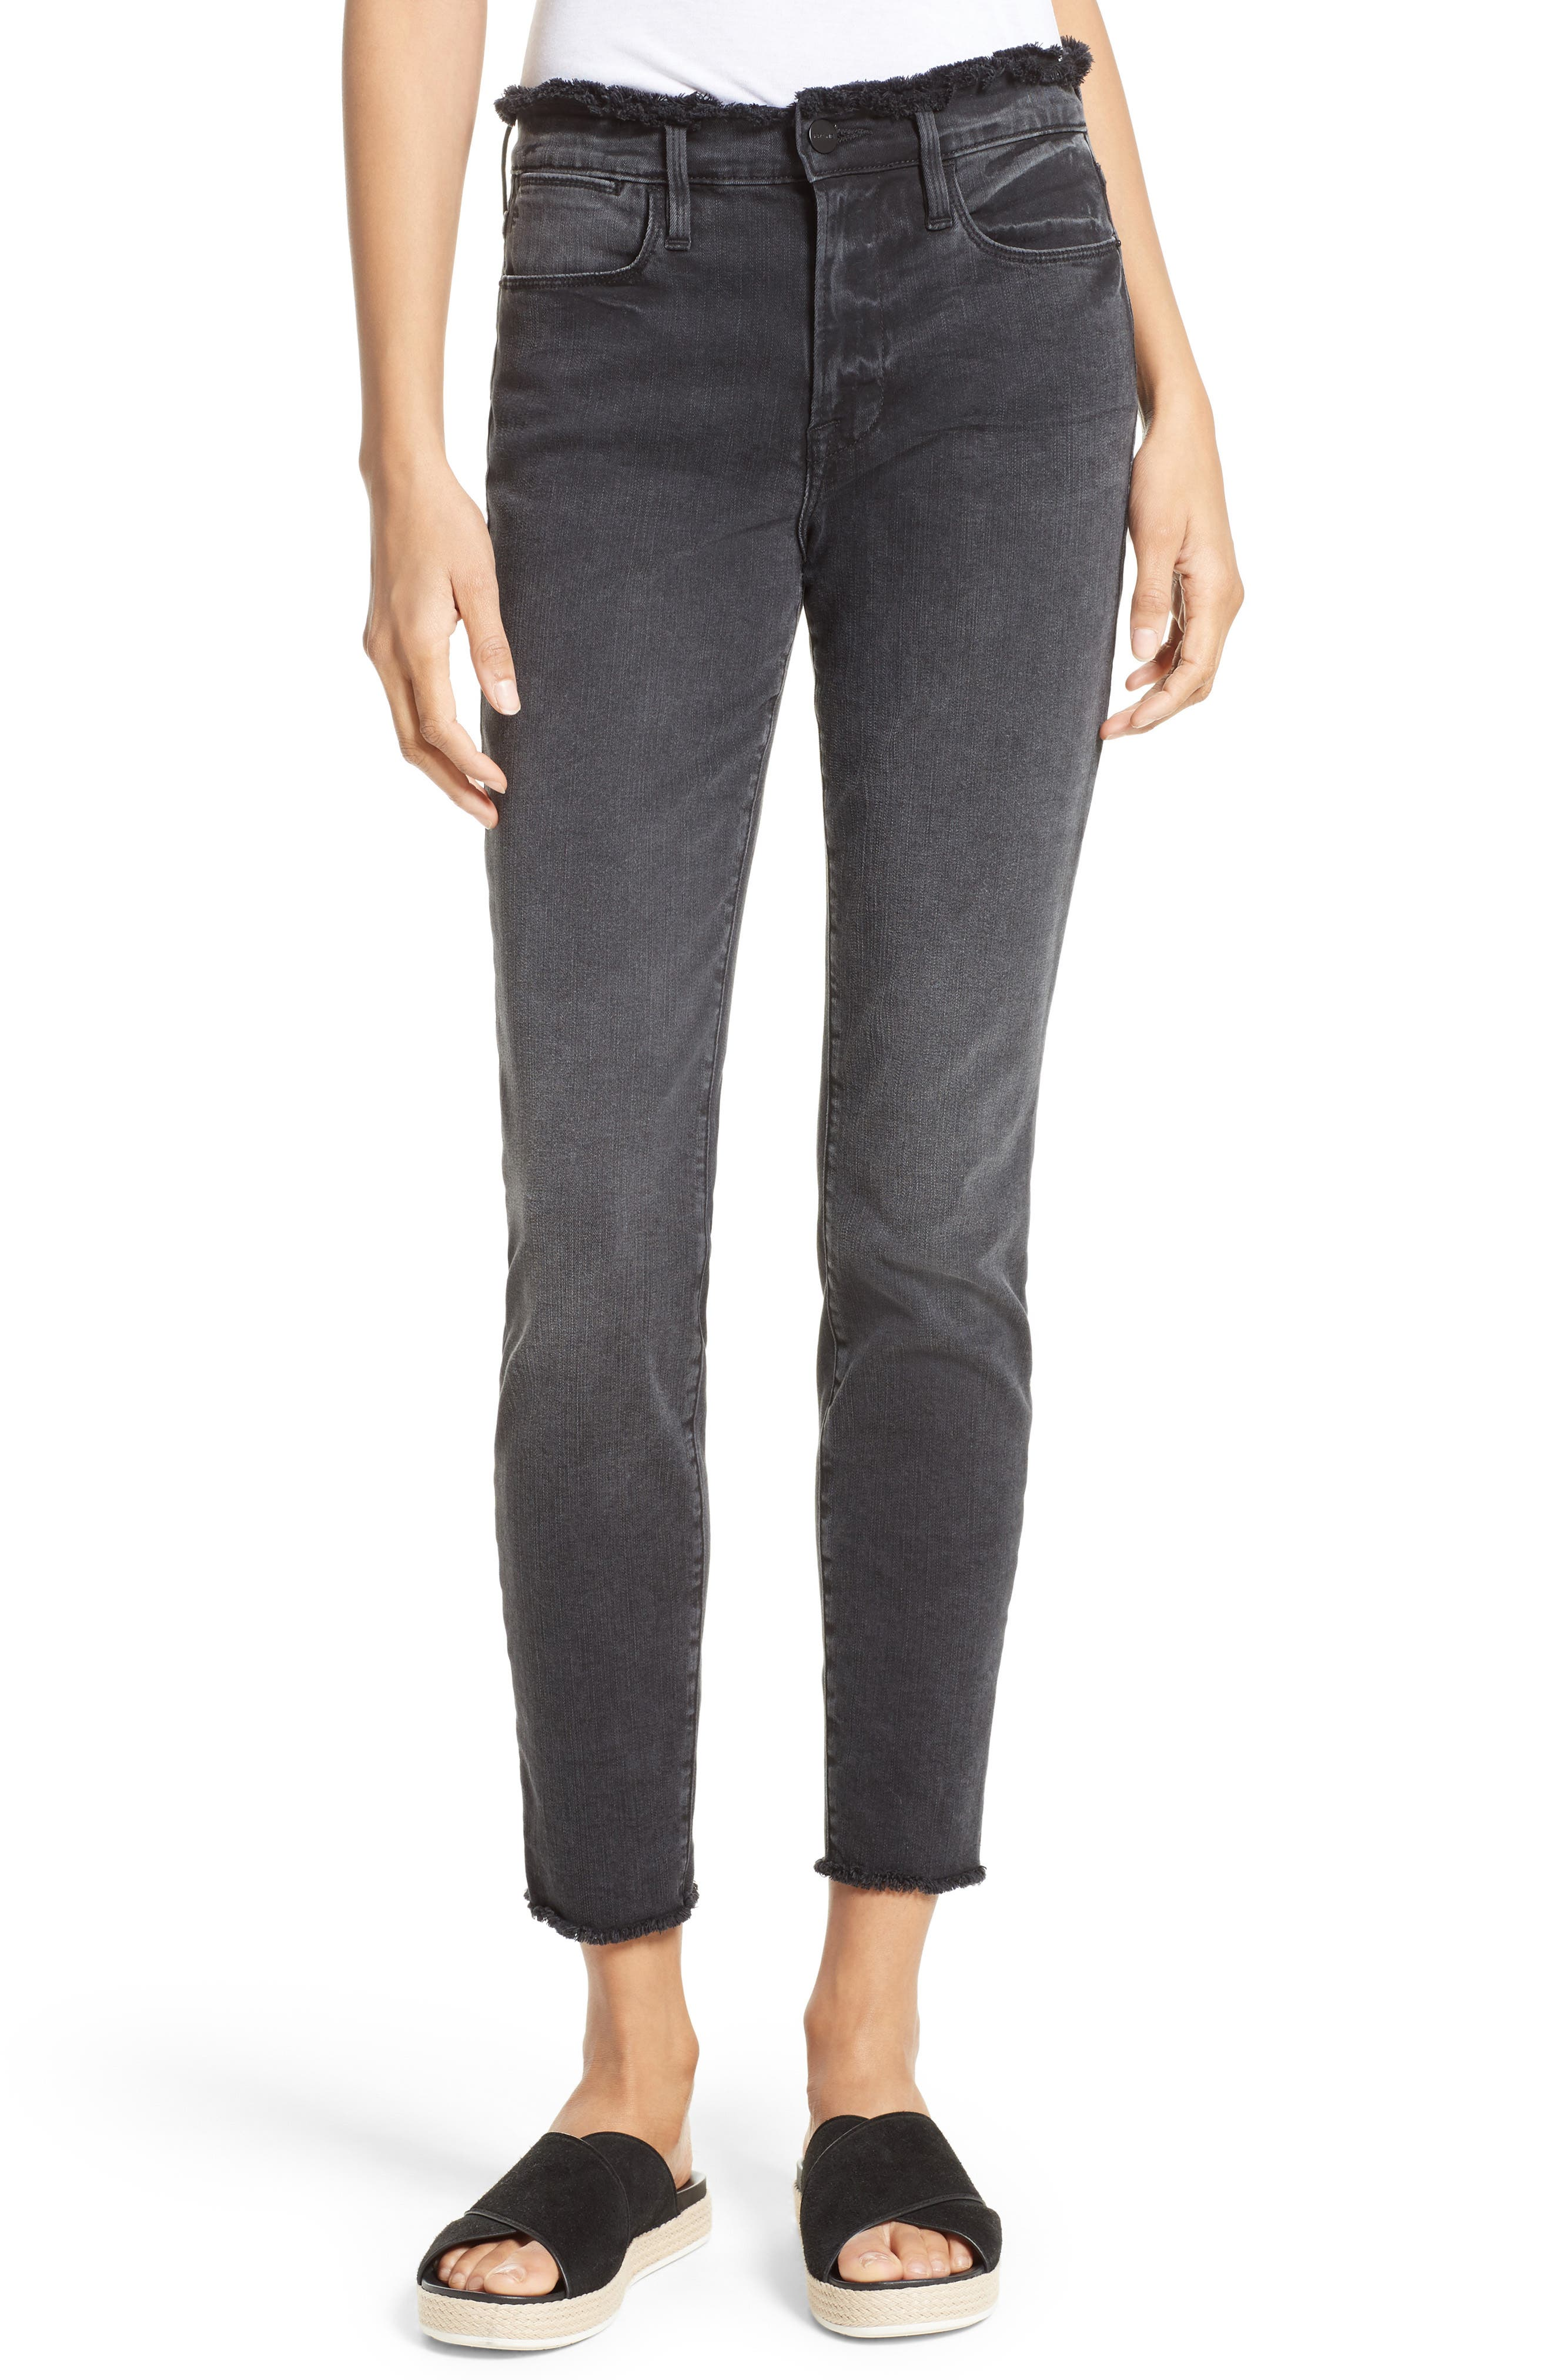 Main Image - FRAME Le High Skinny Frayed High Waist Jeans (Cottonwood) (Nordstrom Exclusive)